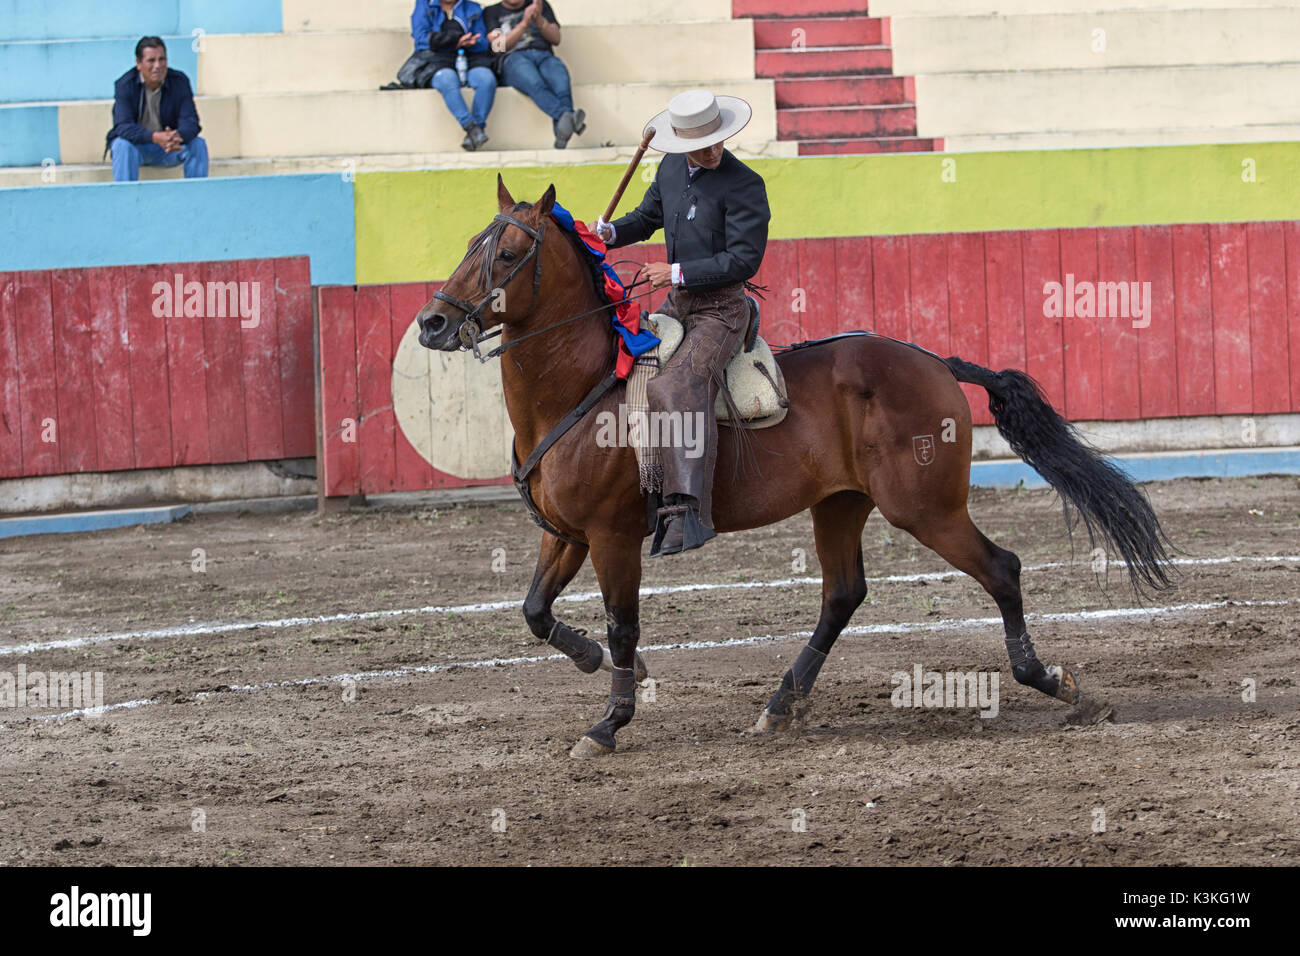 June 18, 2017, Pujili, Ecuador: bullfighter on horseback is getting ready for the ritual fight in the arena Stock Photo